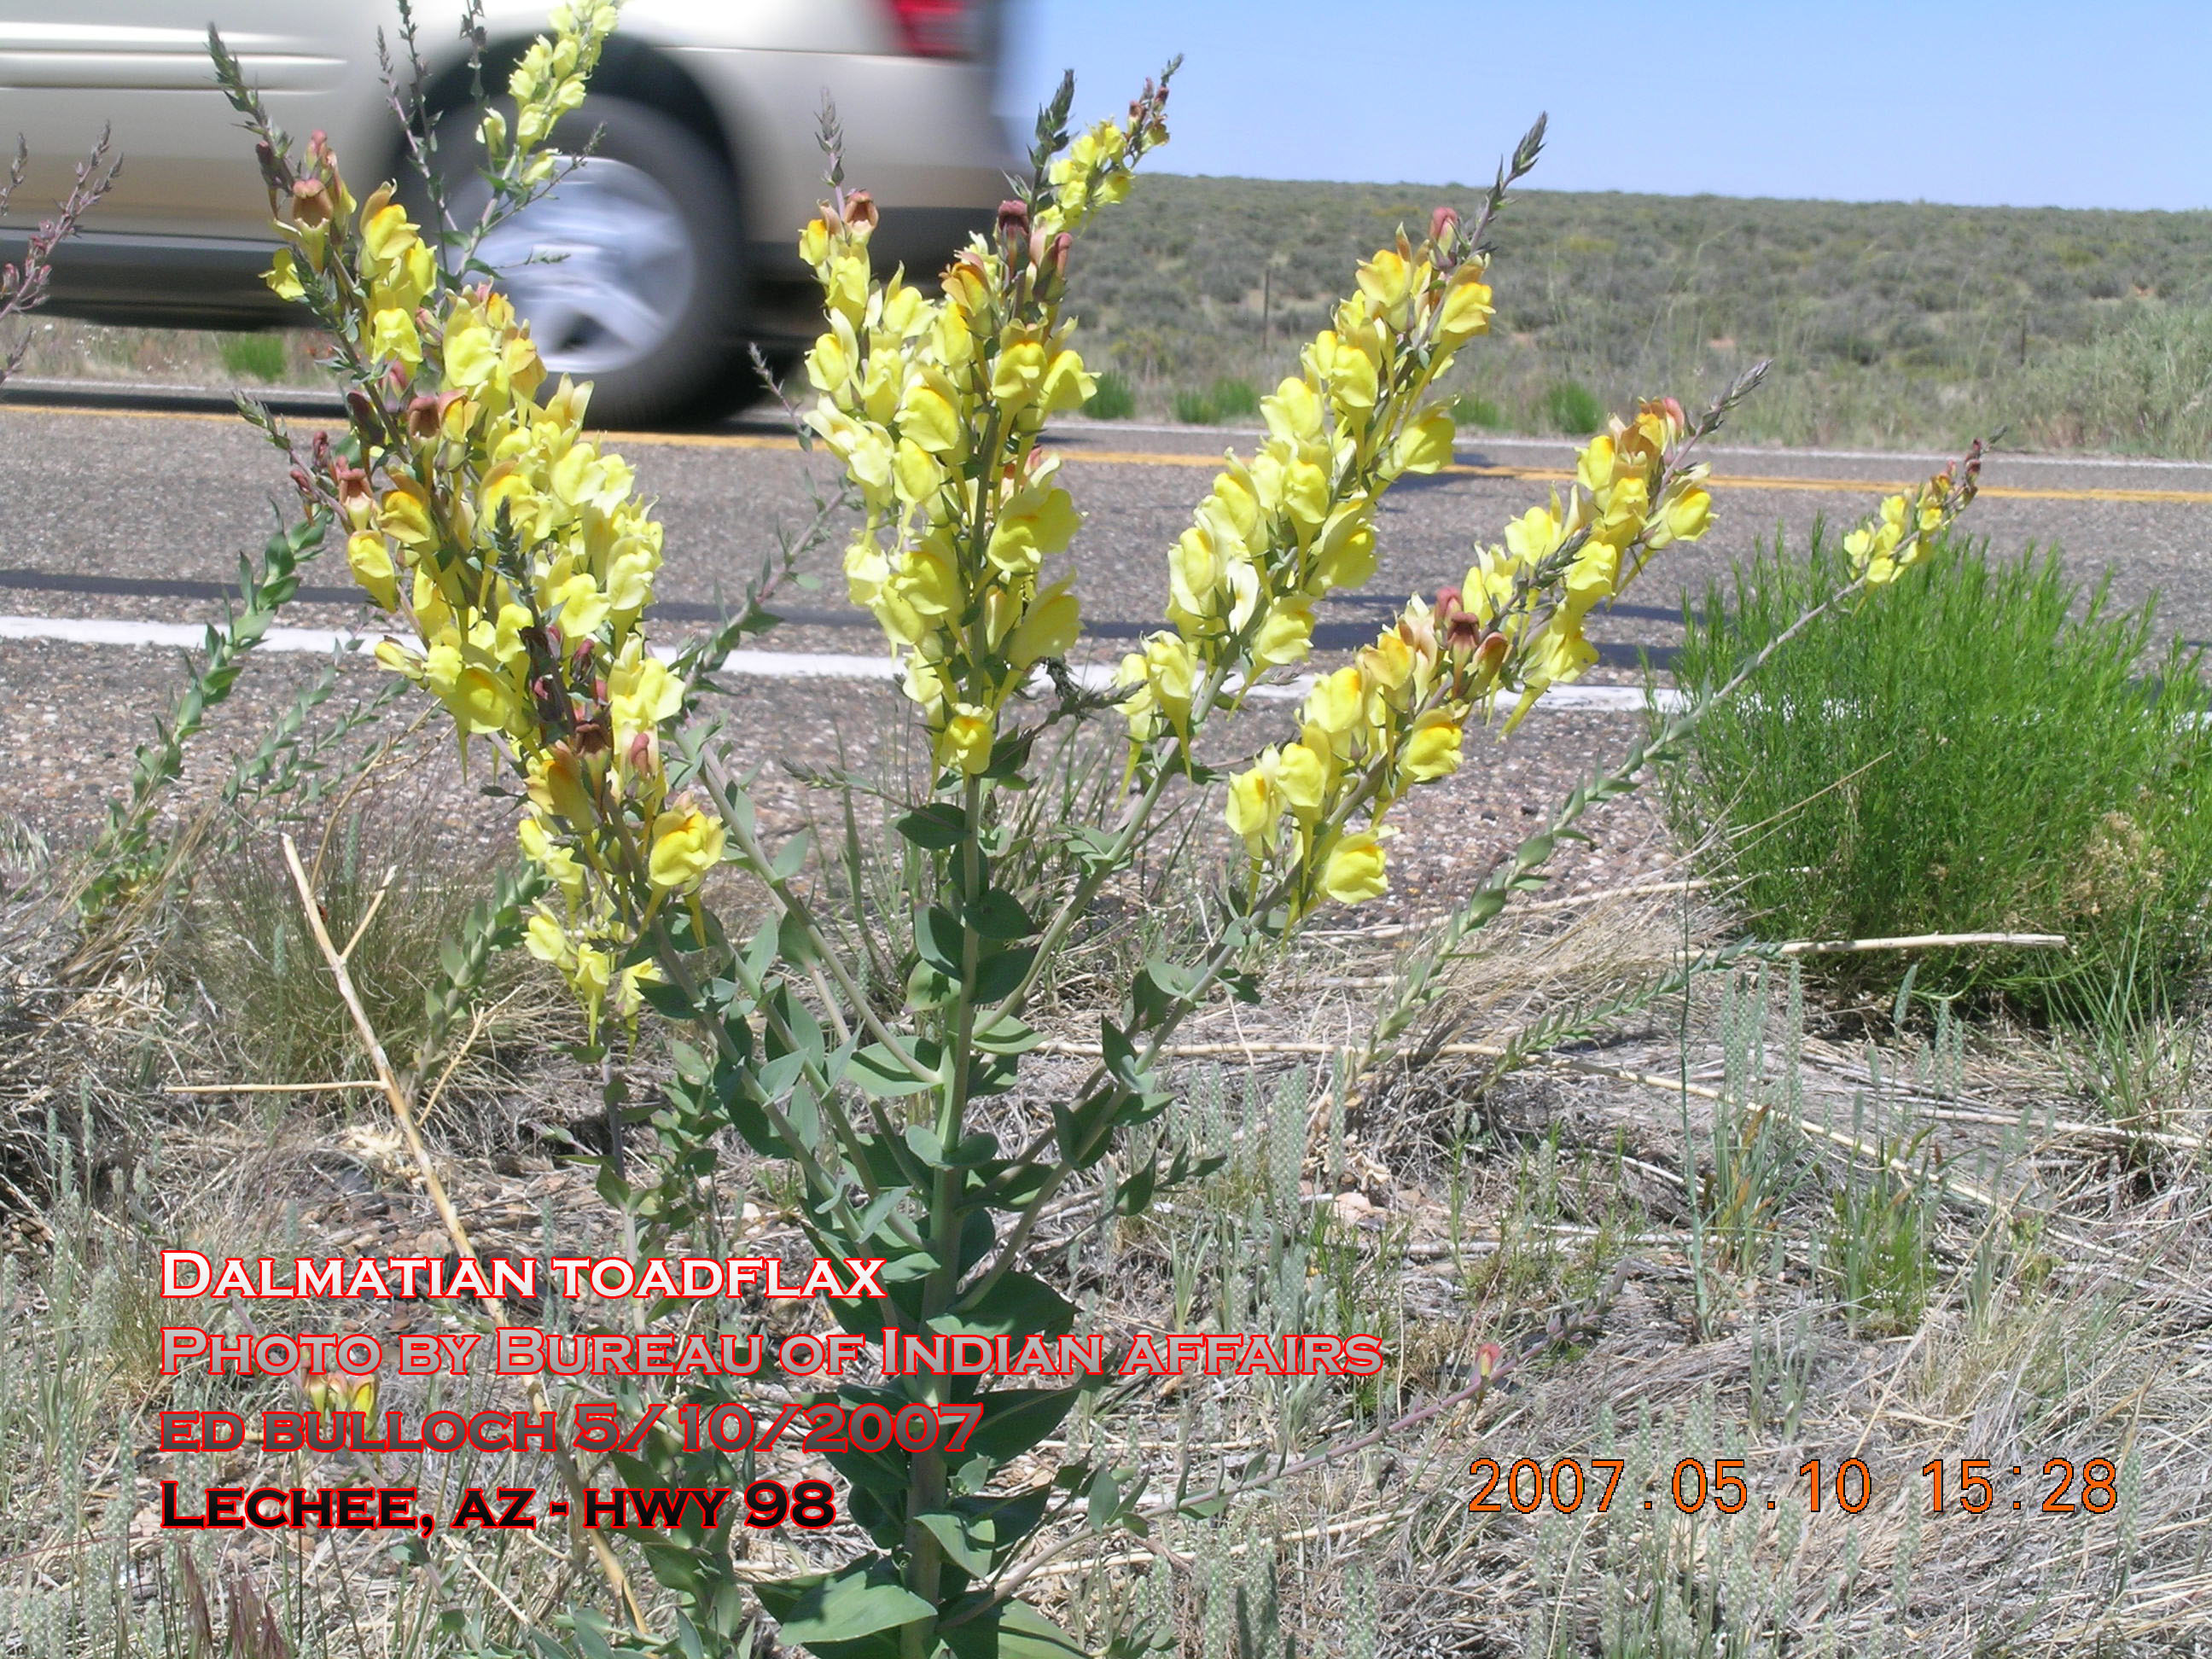 Plant growing roadside, displaying weedy tendencies